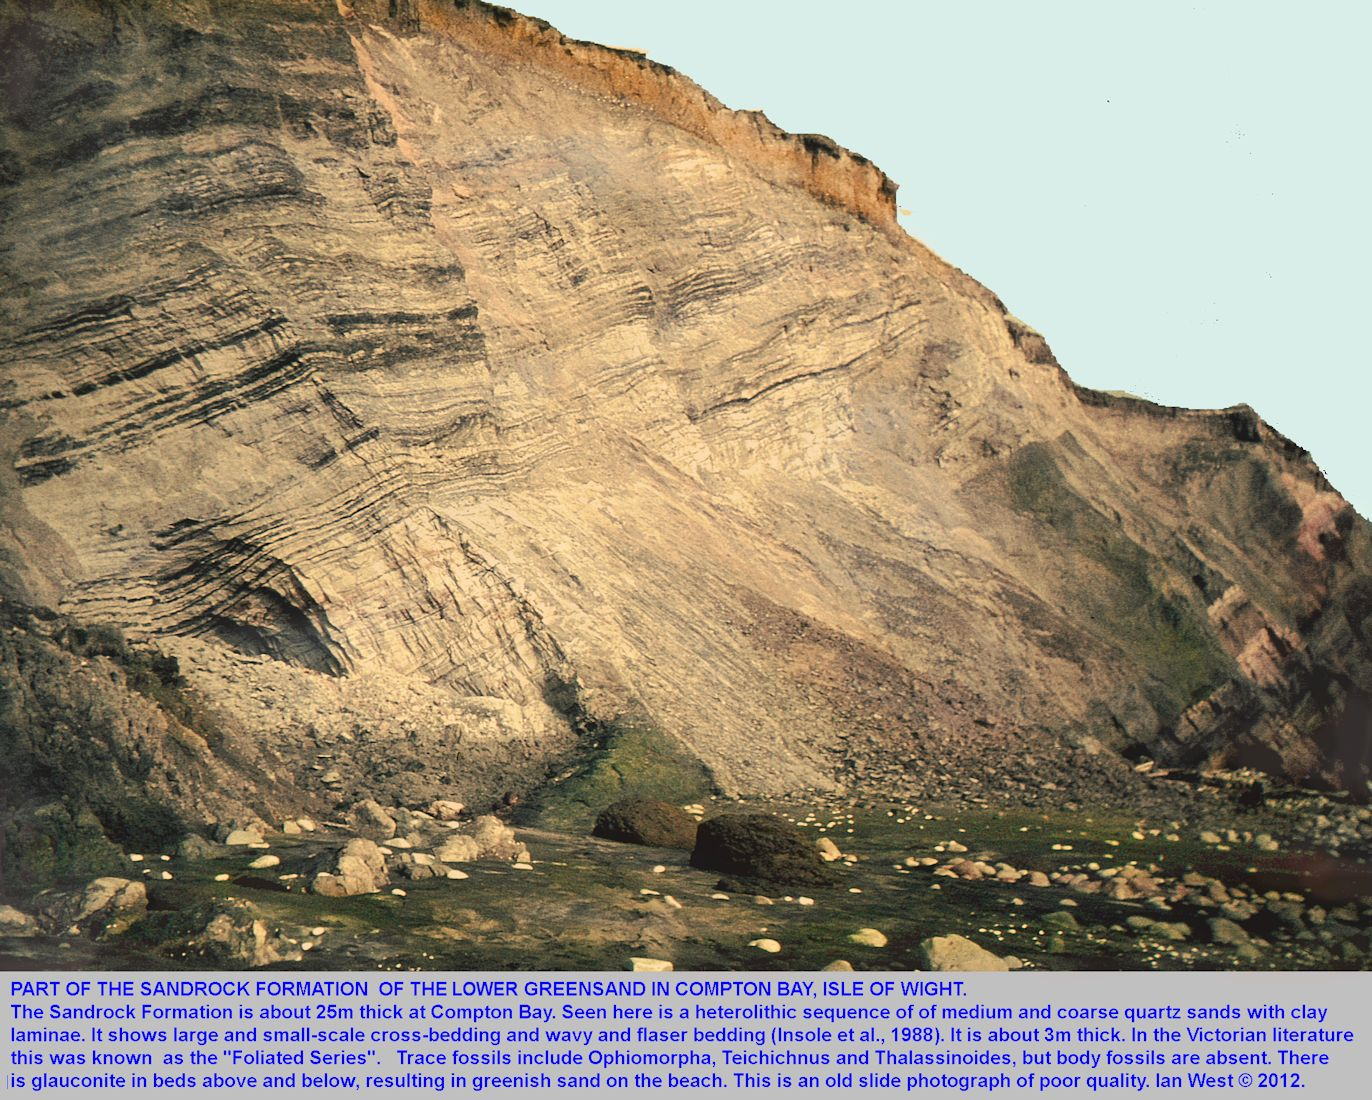 Part of the Sandrock Formation, Lower Greensand, with the so-called Foliated Series, Compton Bay, Isle of Wight, from an old slide